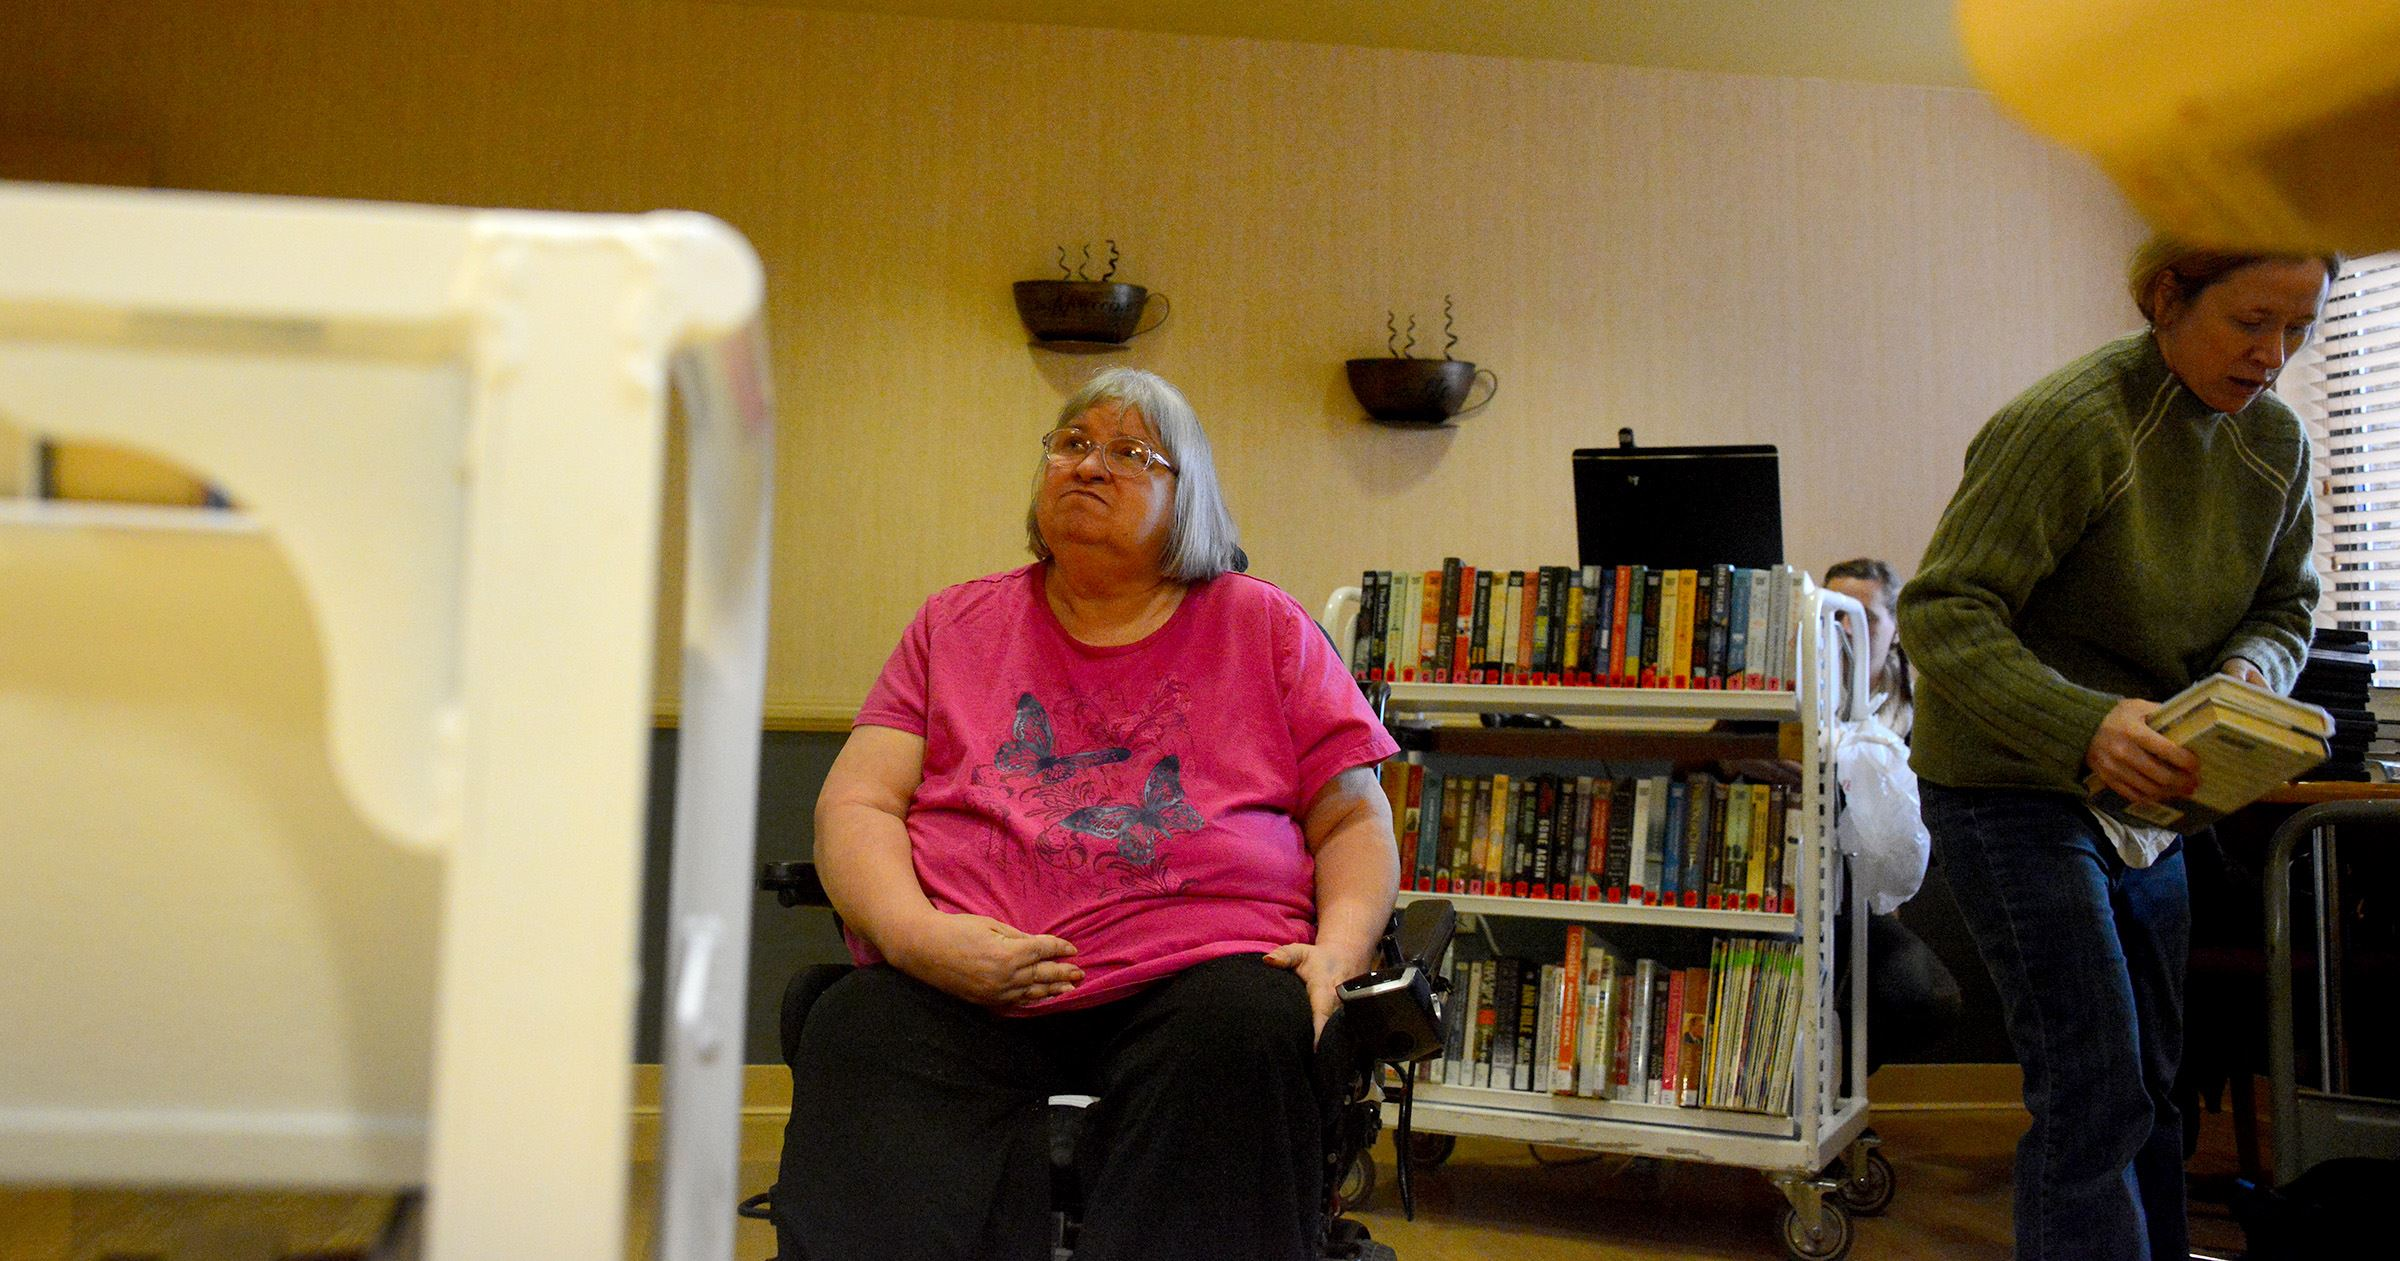 20170105lf-Peers03-2 Becky Napierski, 65, is an avid reader and advocate for the Bookmobile program at ManorCare health Services-Greentree. Ms. Napierski is a graduate of the Pennsylvania Empowered Expert Residents program.